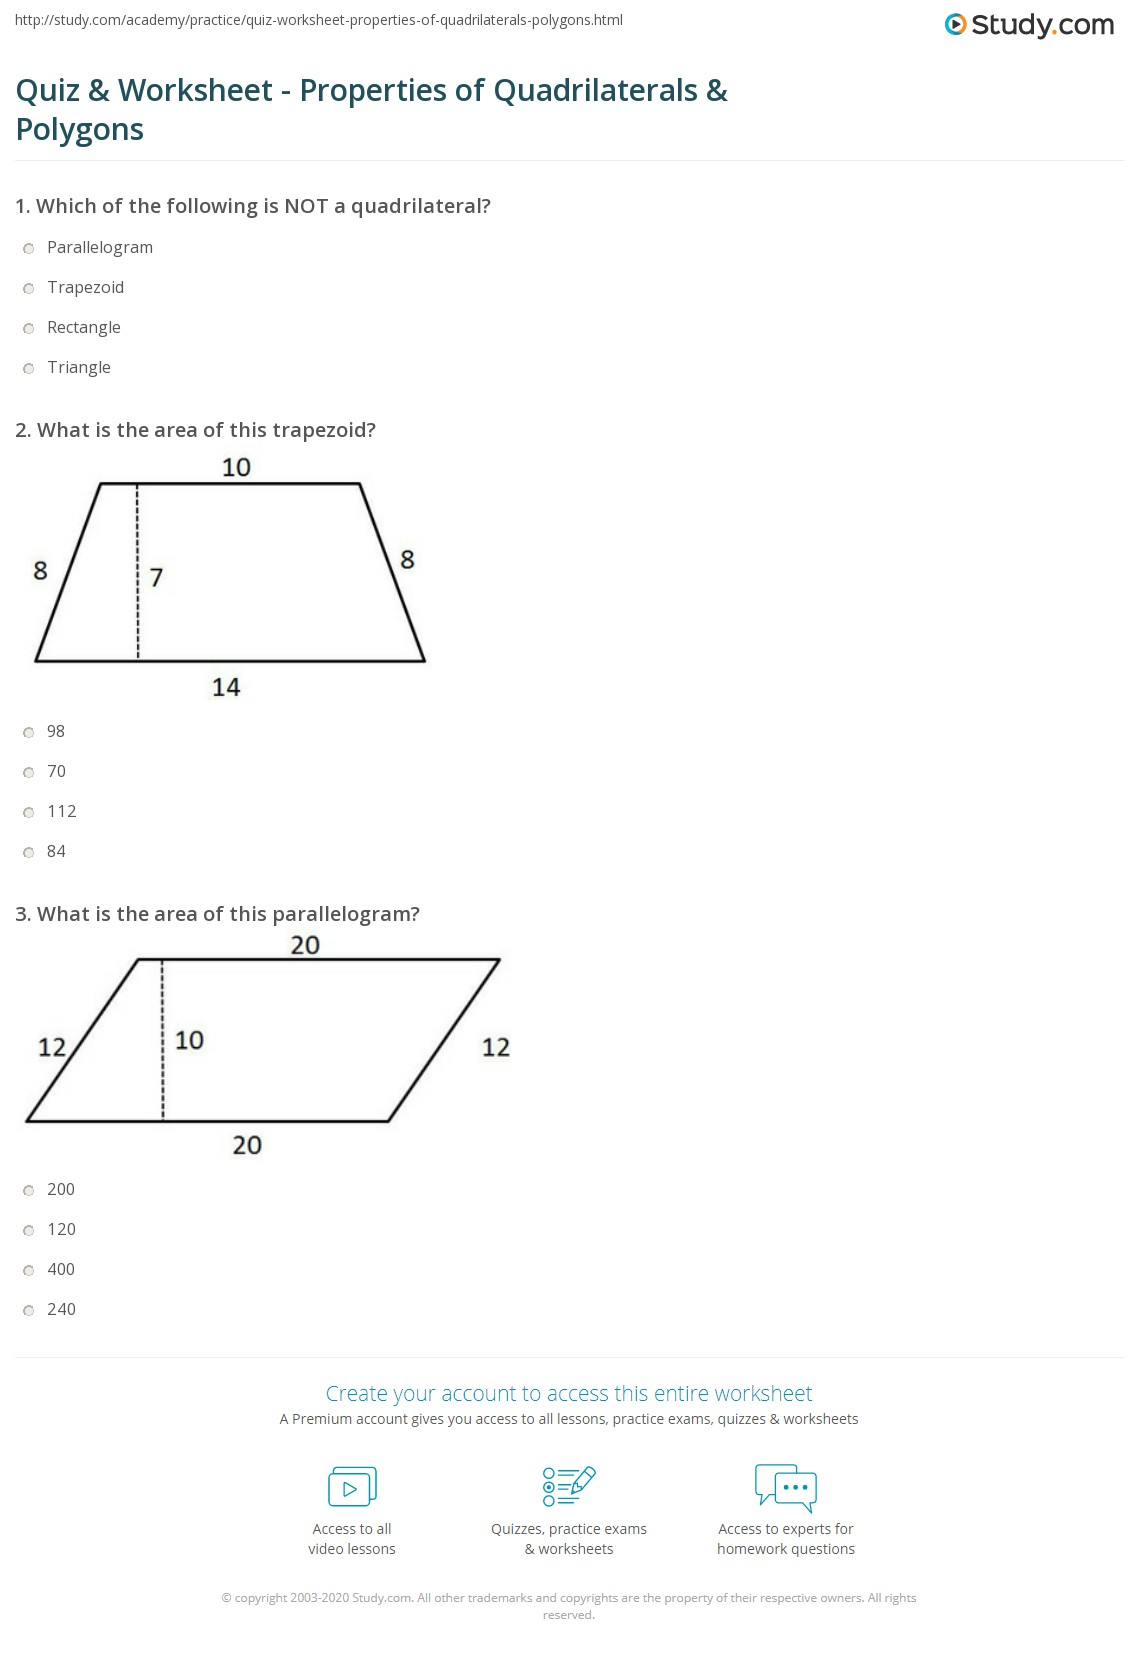 Worksheets Quadrilaterals Worksheet quiz worksheet properties of quadrilaterals polygons study com print shapes parallelograms trapezoids worksheet